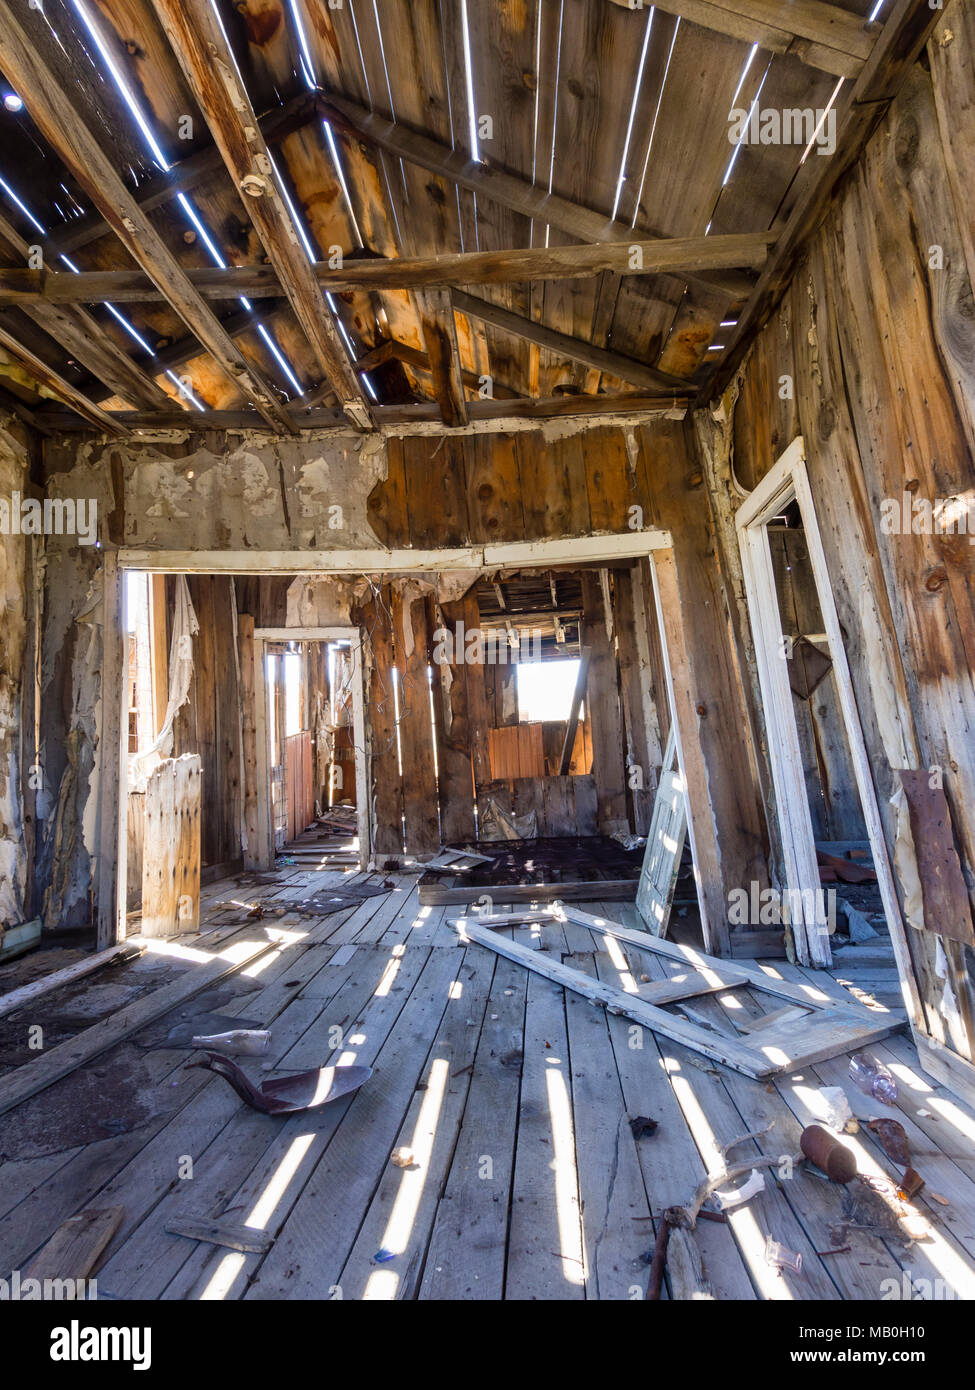 Look Inside An Abandoned Desolate Building At Bodie State Historic Park A Former Wild